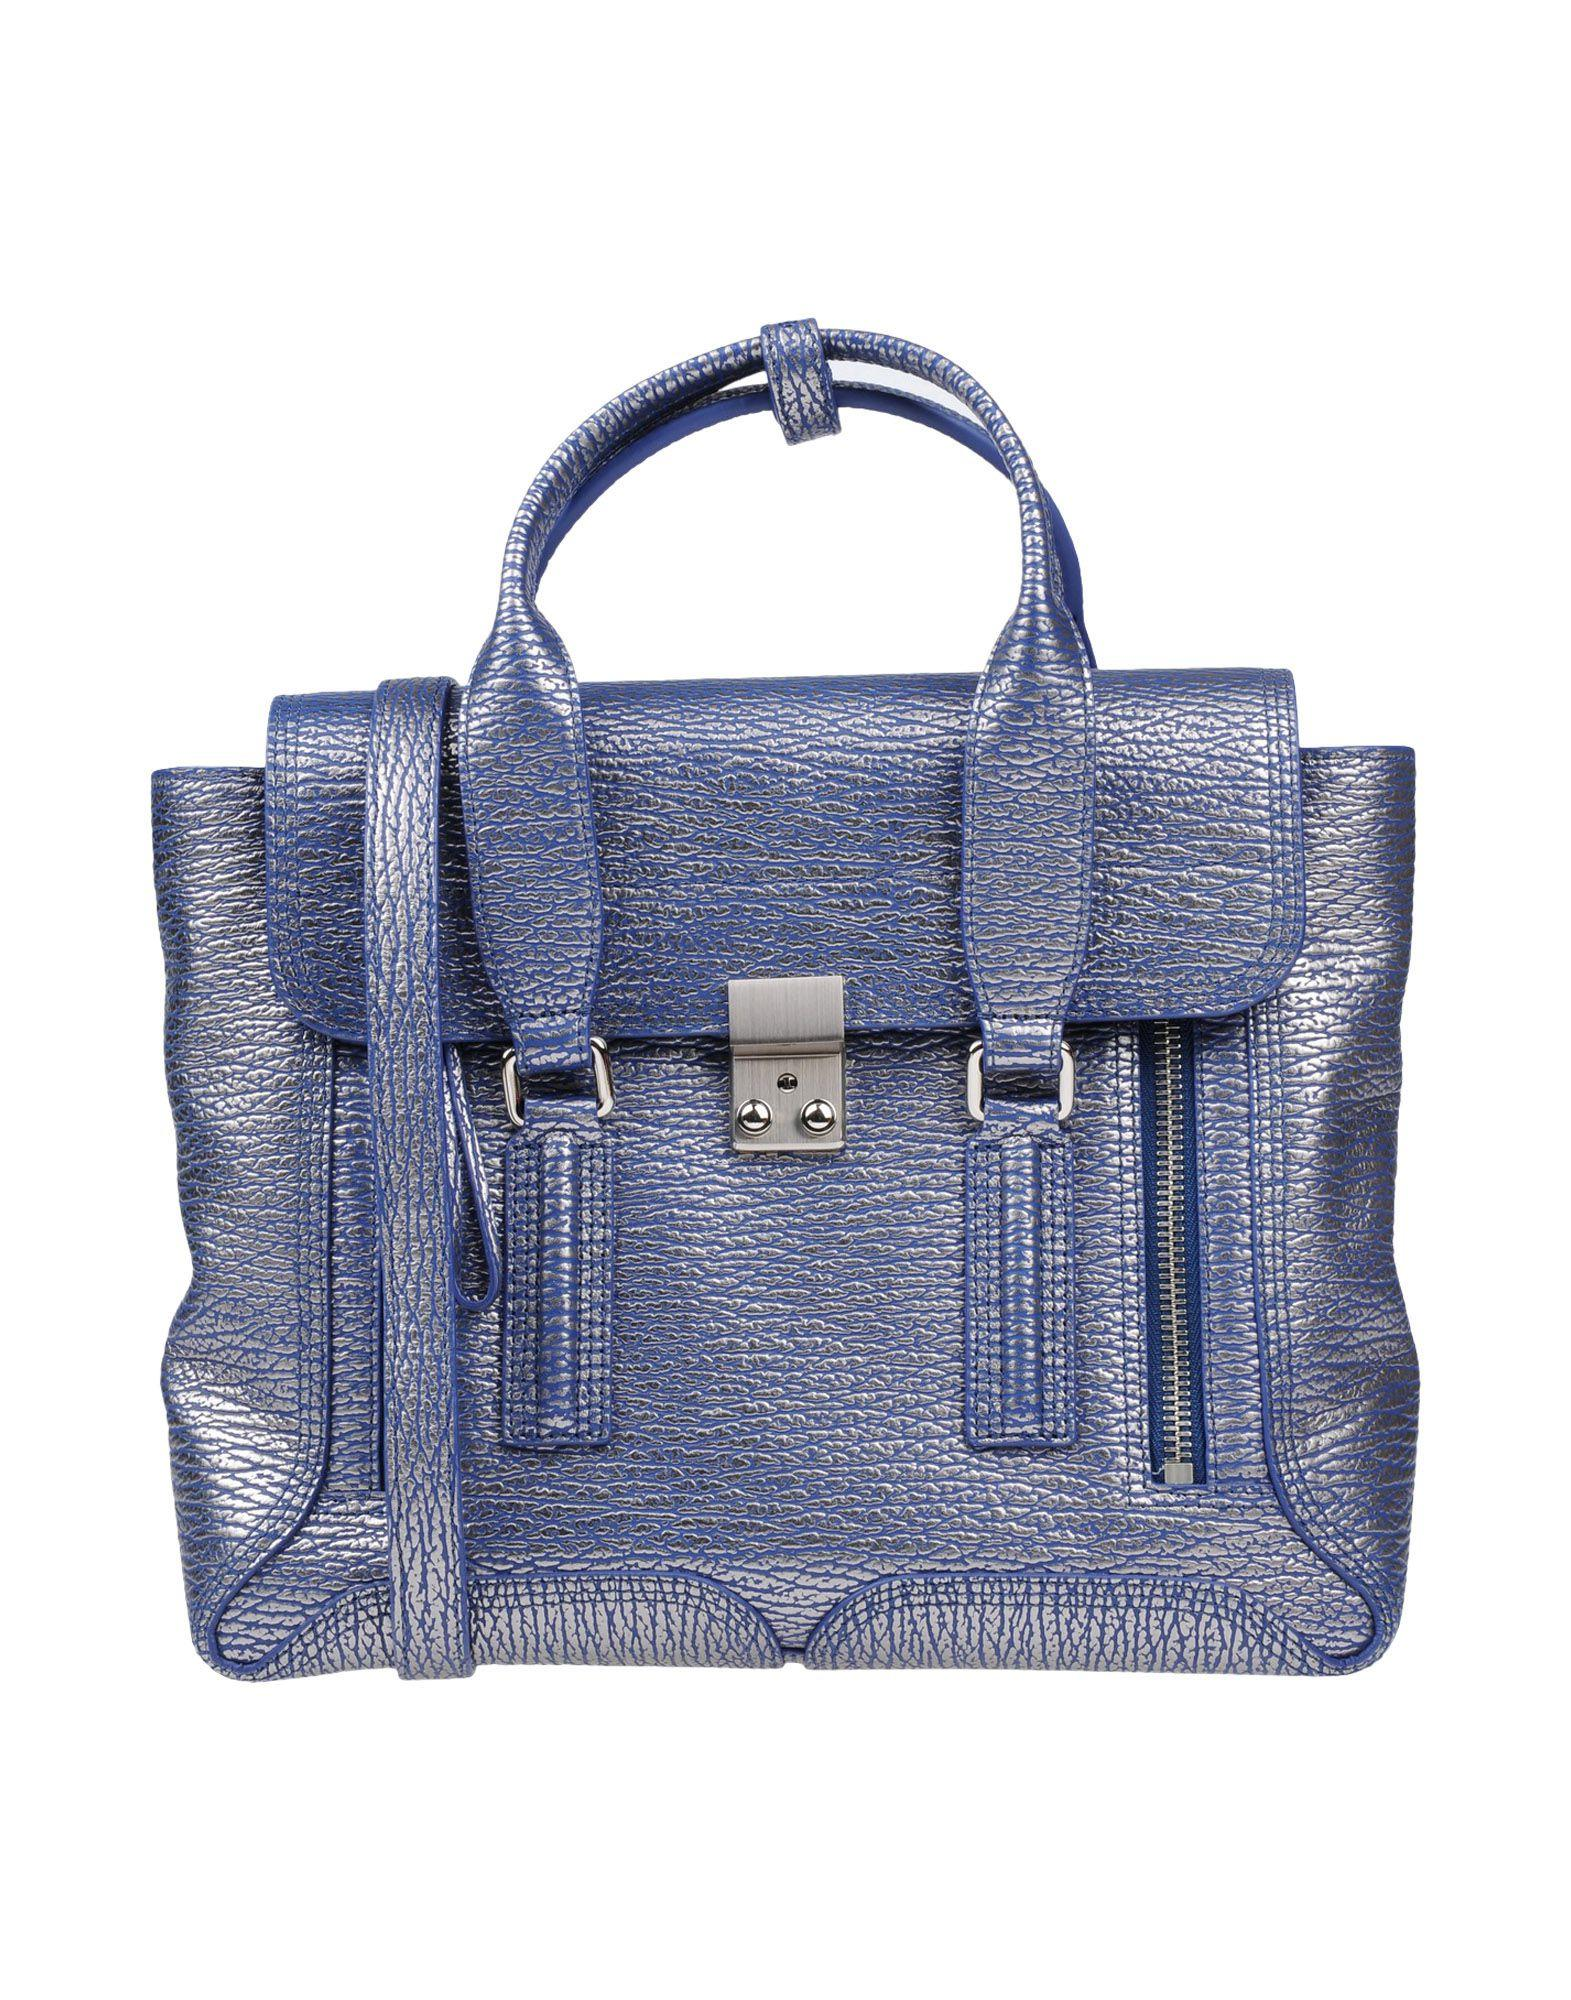 3.1 Phillip Lim Handbags In Dark Blue